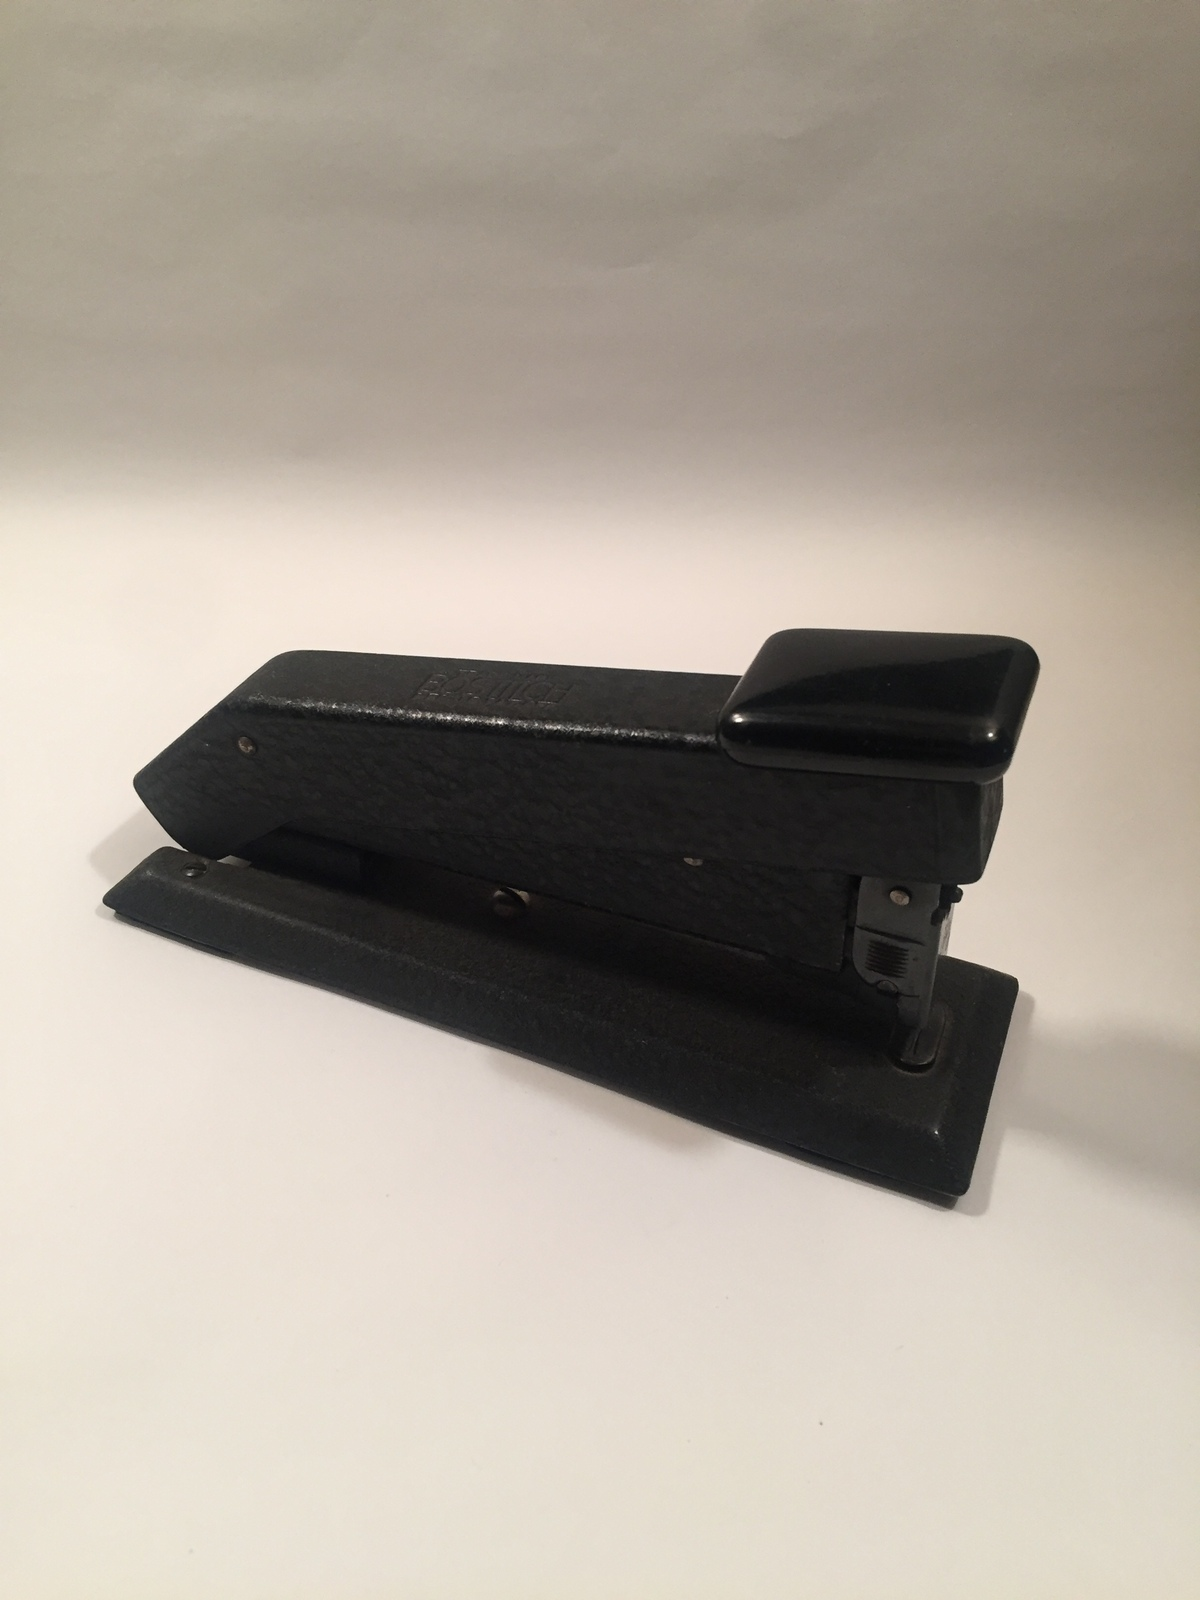 Vintage 60s Bostitch Model #B53 hammered black desk stapler